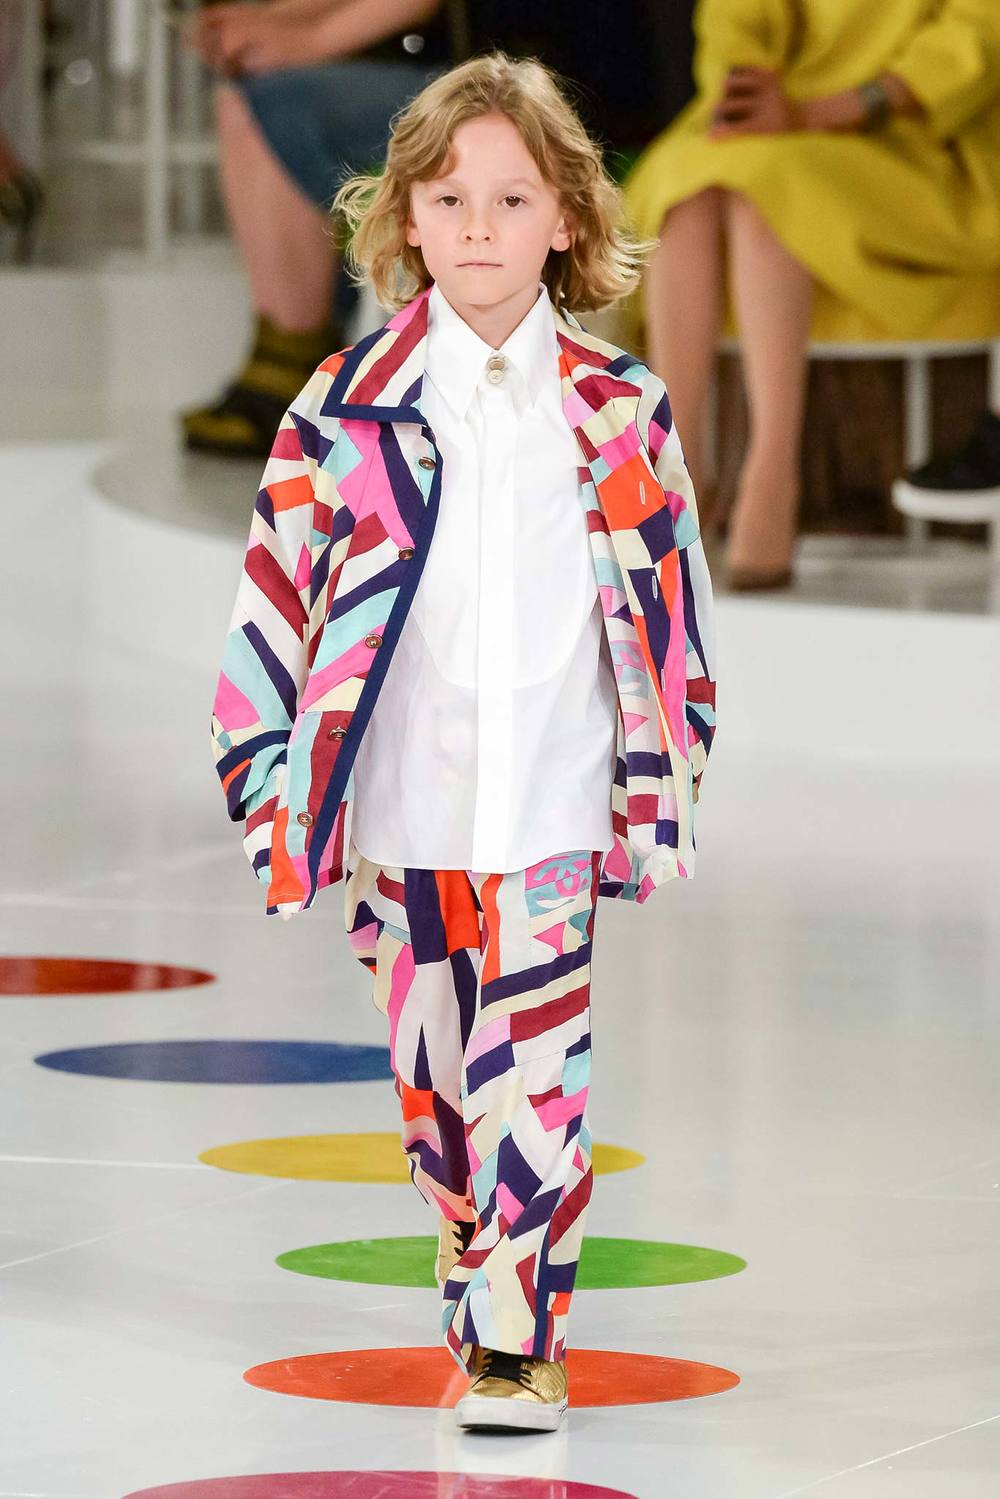 Karl Lagerfelds god son made an appearance on the runway for Chanel CR 16 in Korea, sporting the brighter, more chevron oriented print - so cute!!!! Completely off subject - but yet another nod to the sudden growing crescendo of 'Mommy and Me' product that seems to be re-surging in the market place - but that's another story!